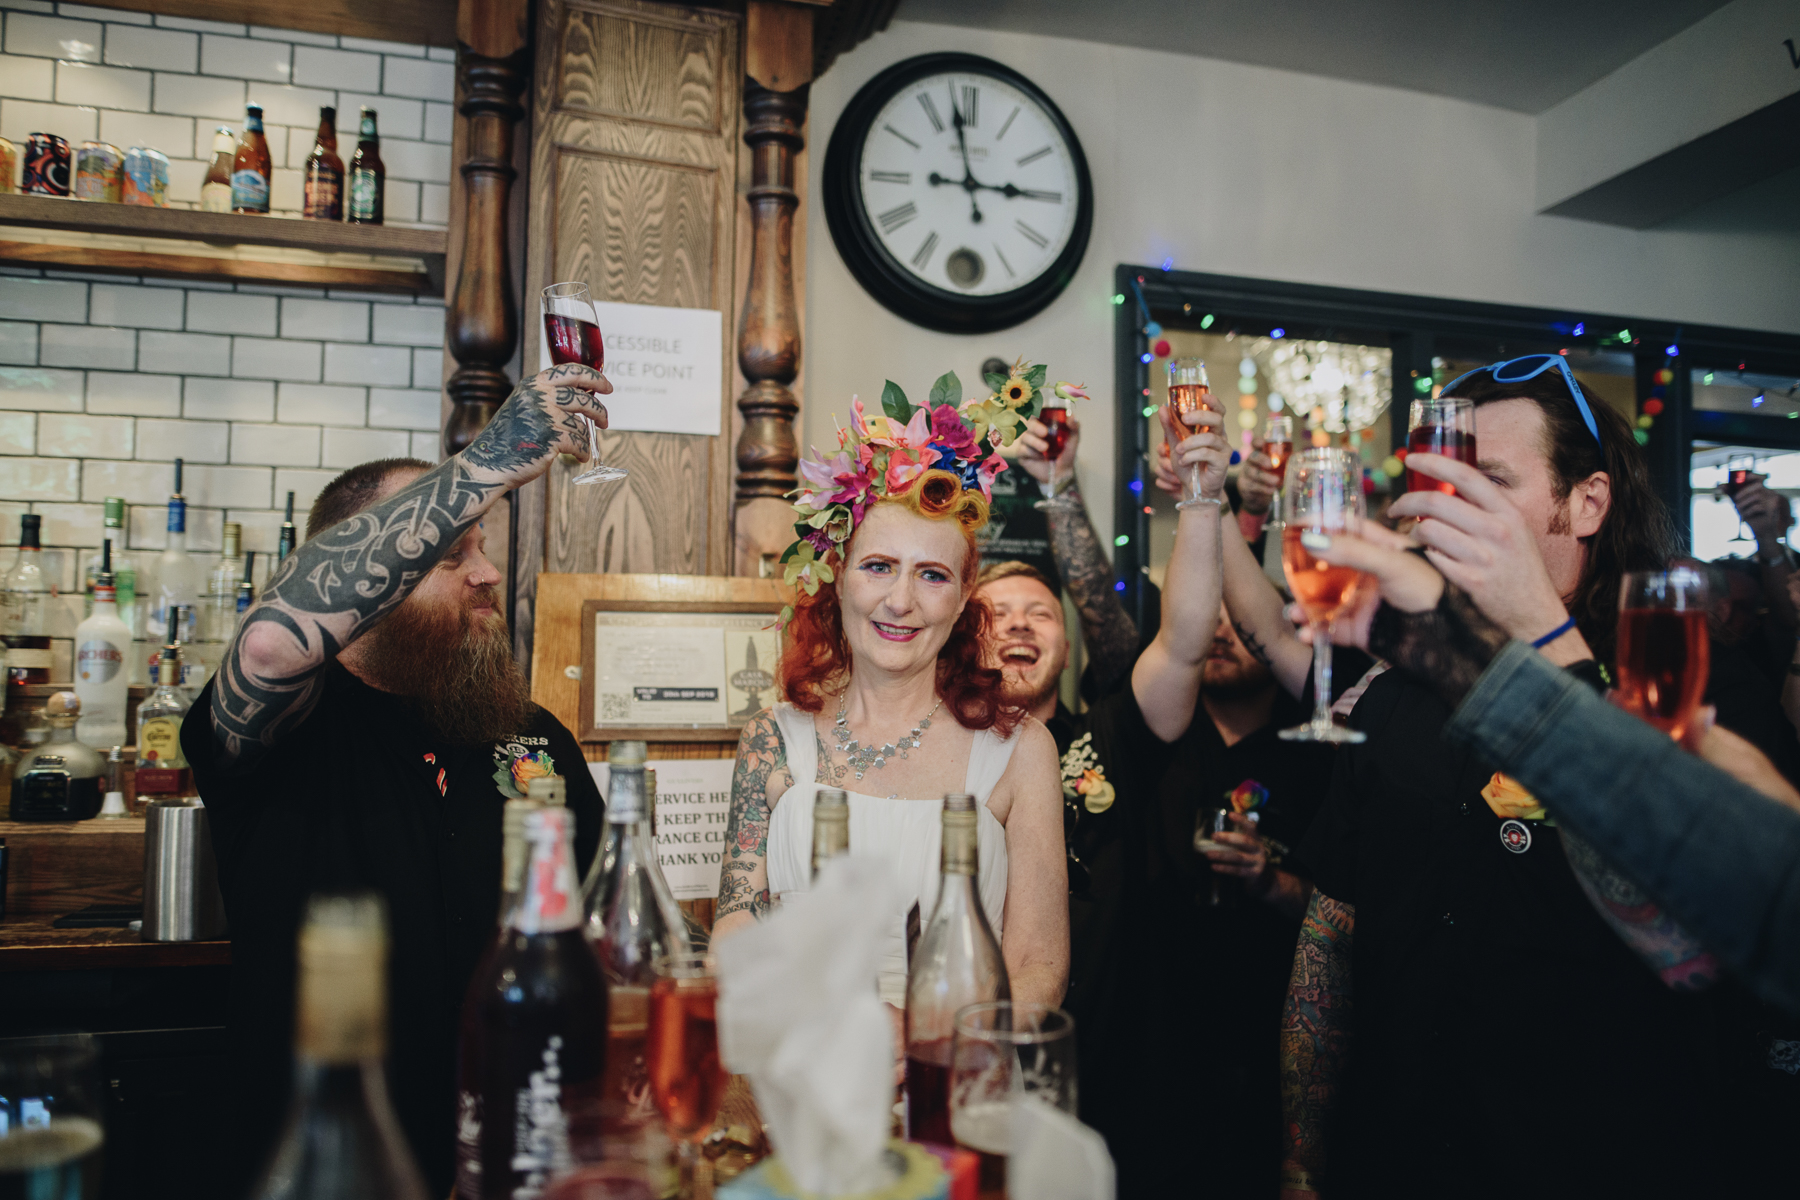 Alternative_Manchester_Wedding_Photography_The_Pin-Up_Bride_Photography-34.jpg